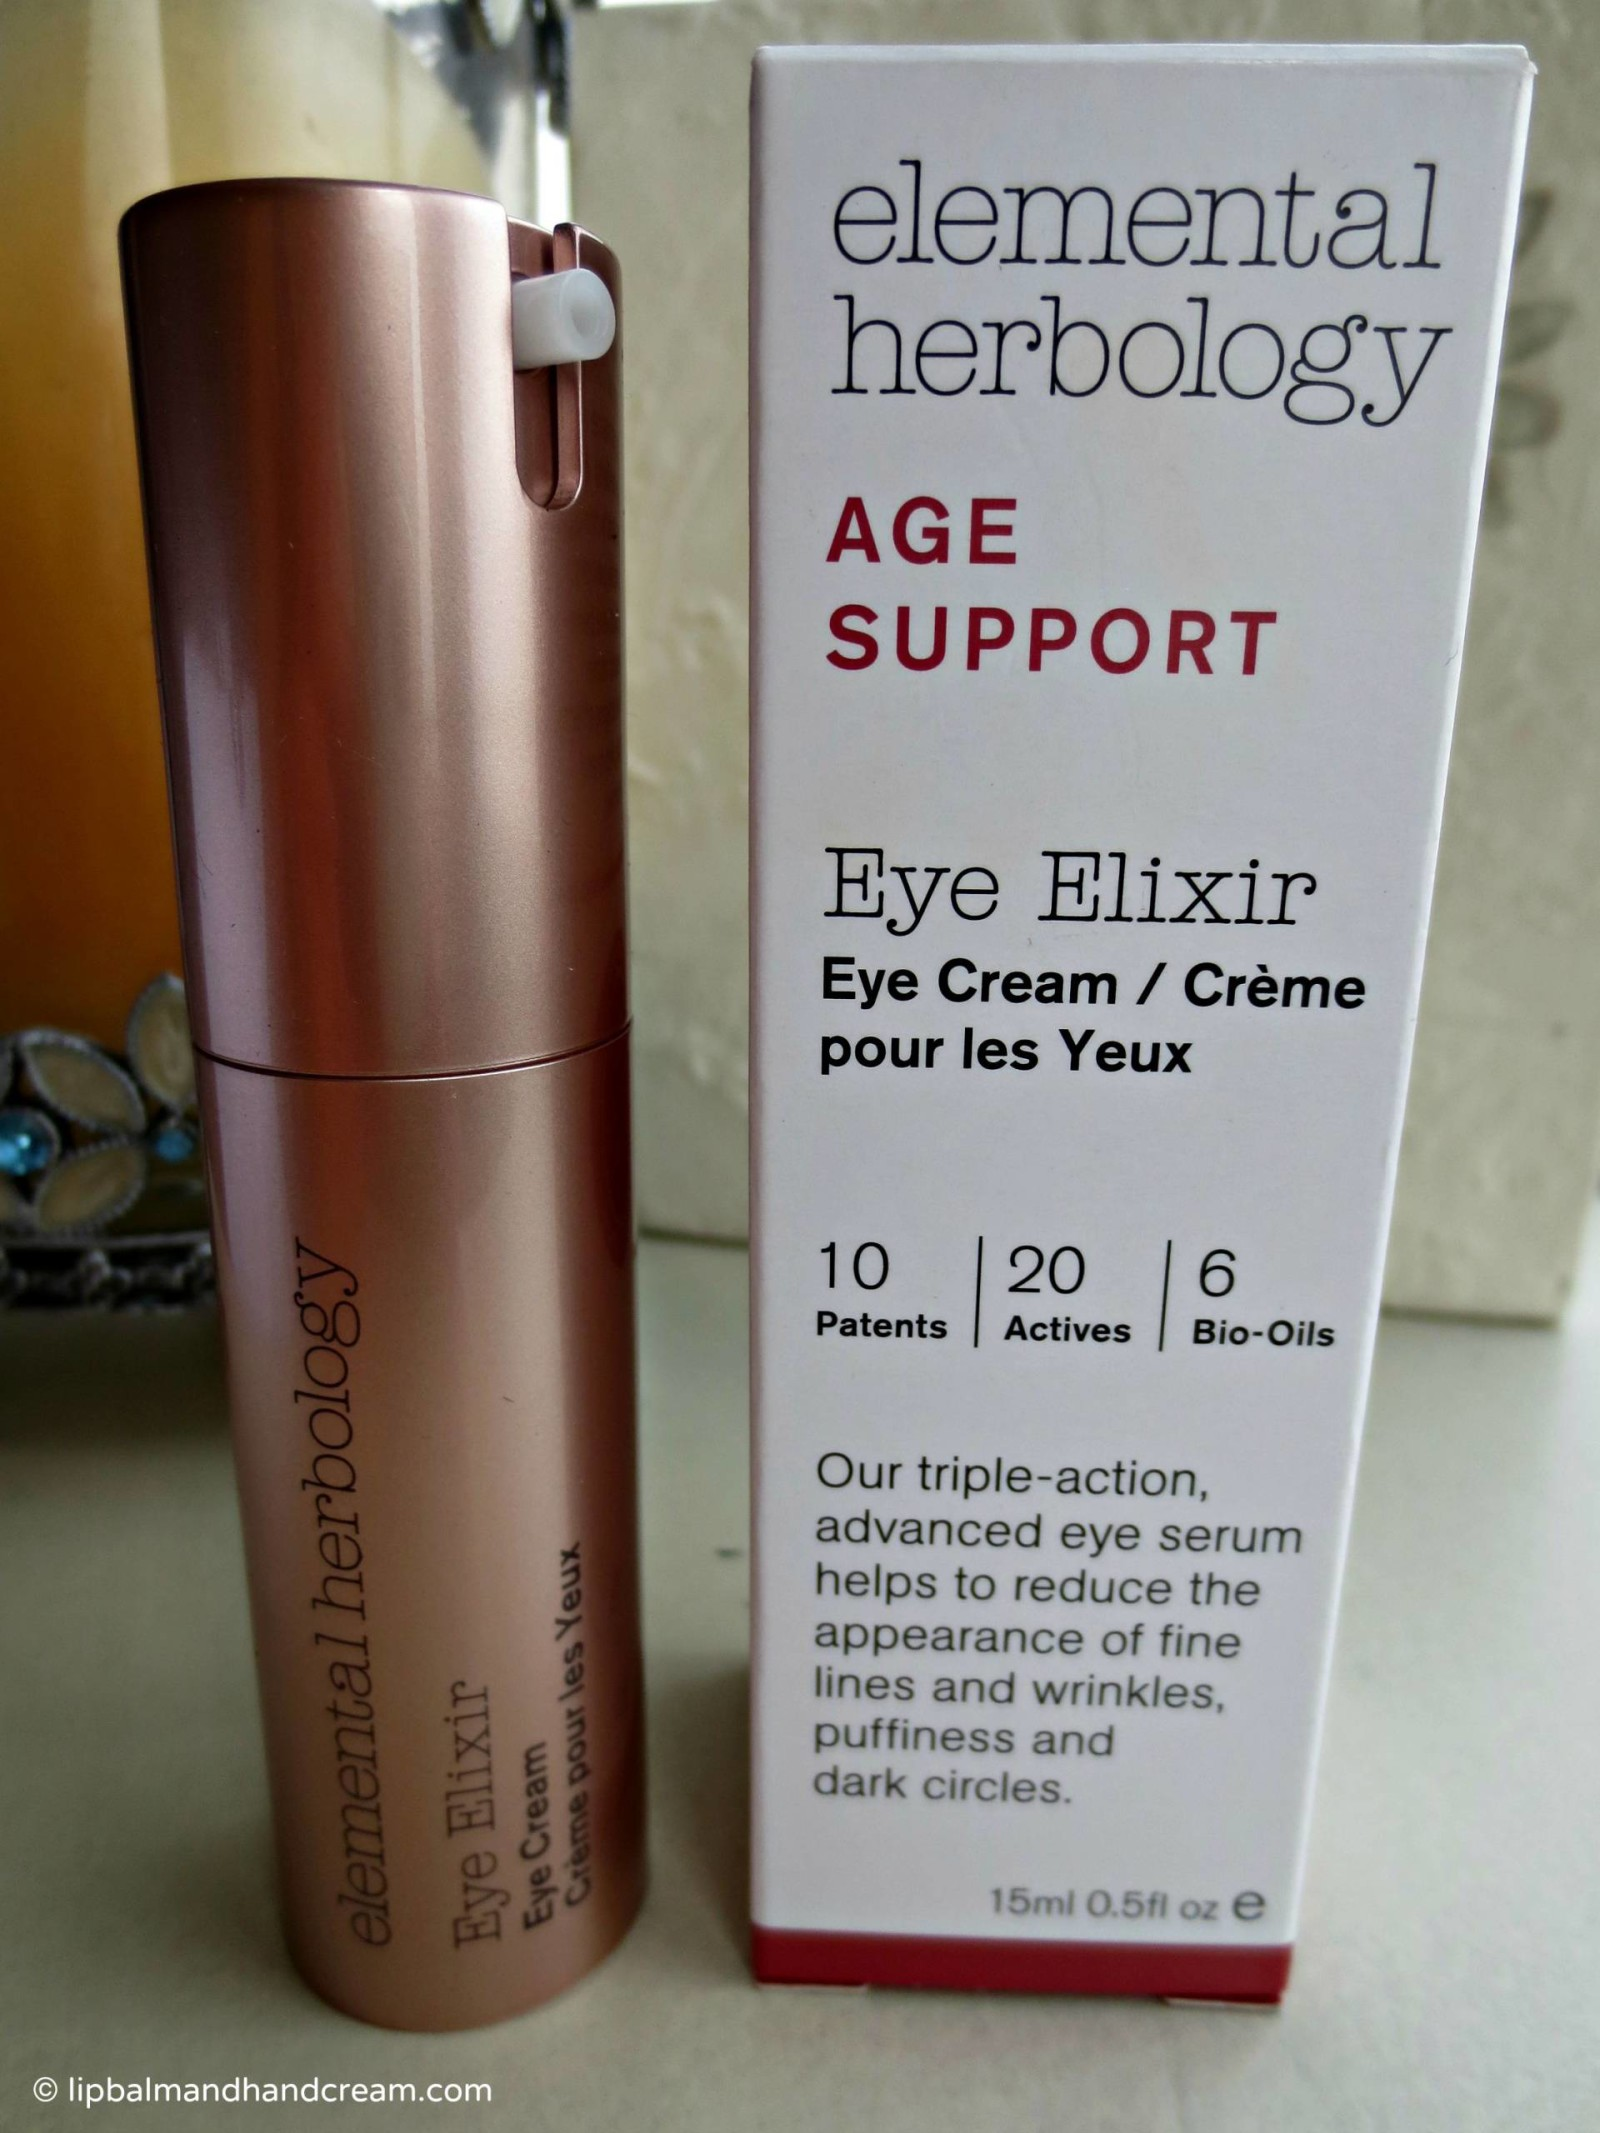 Elemental herbology eye elixir (eye cream to you and I)